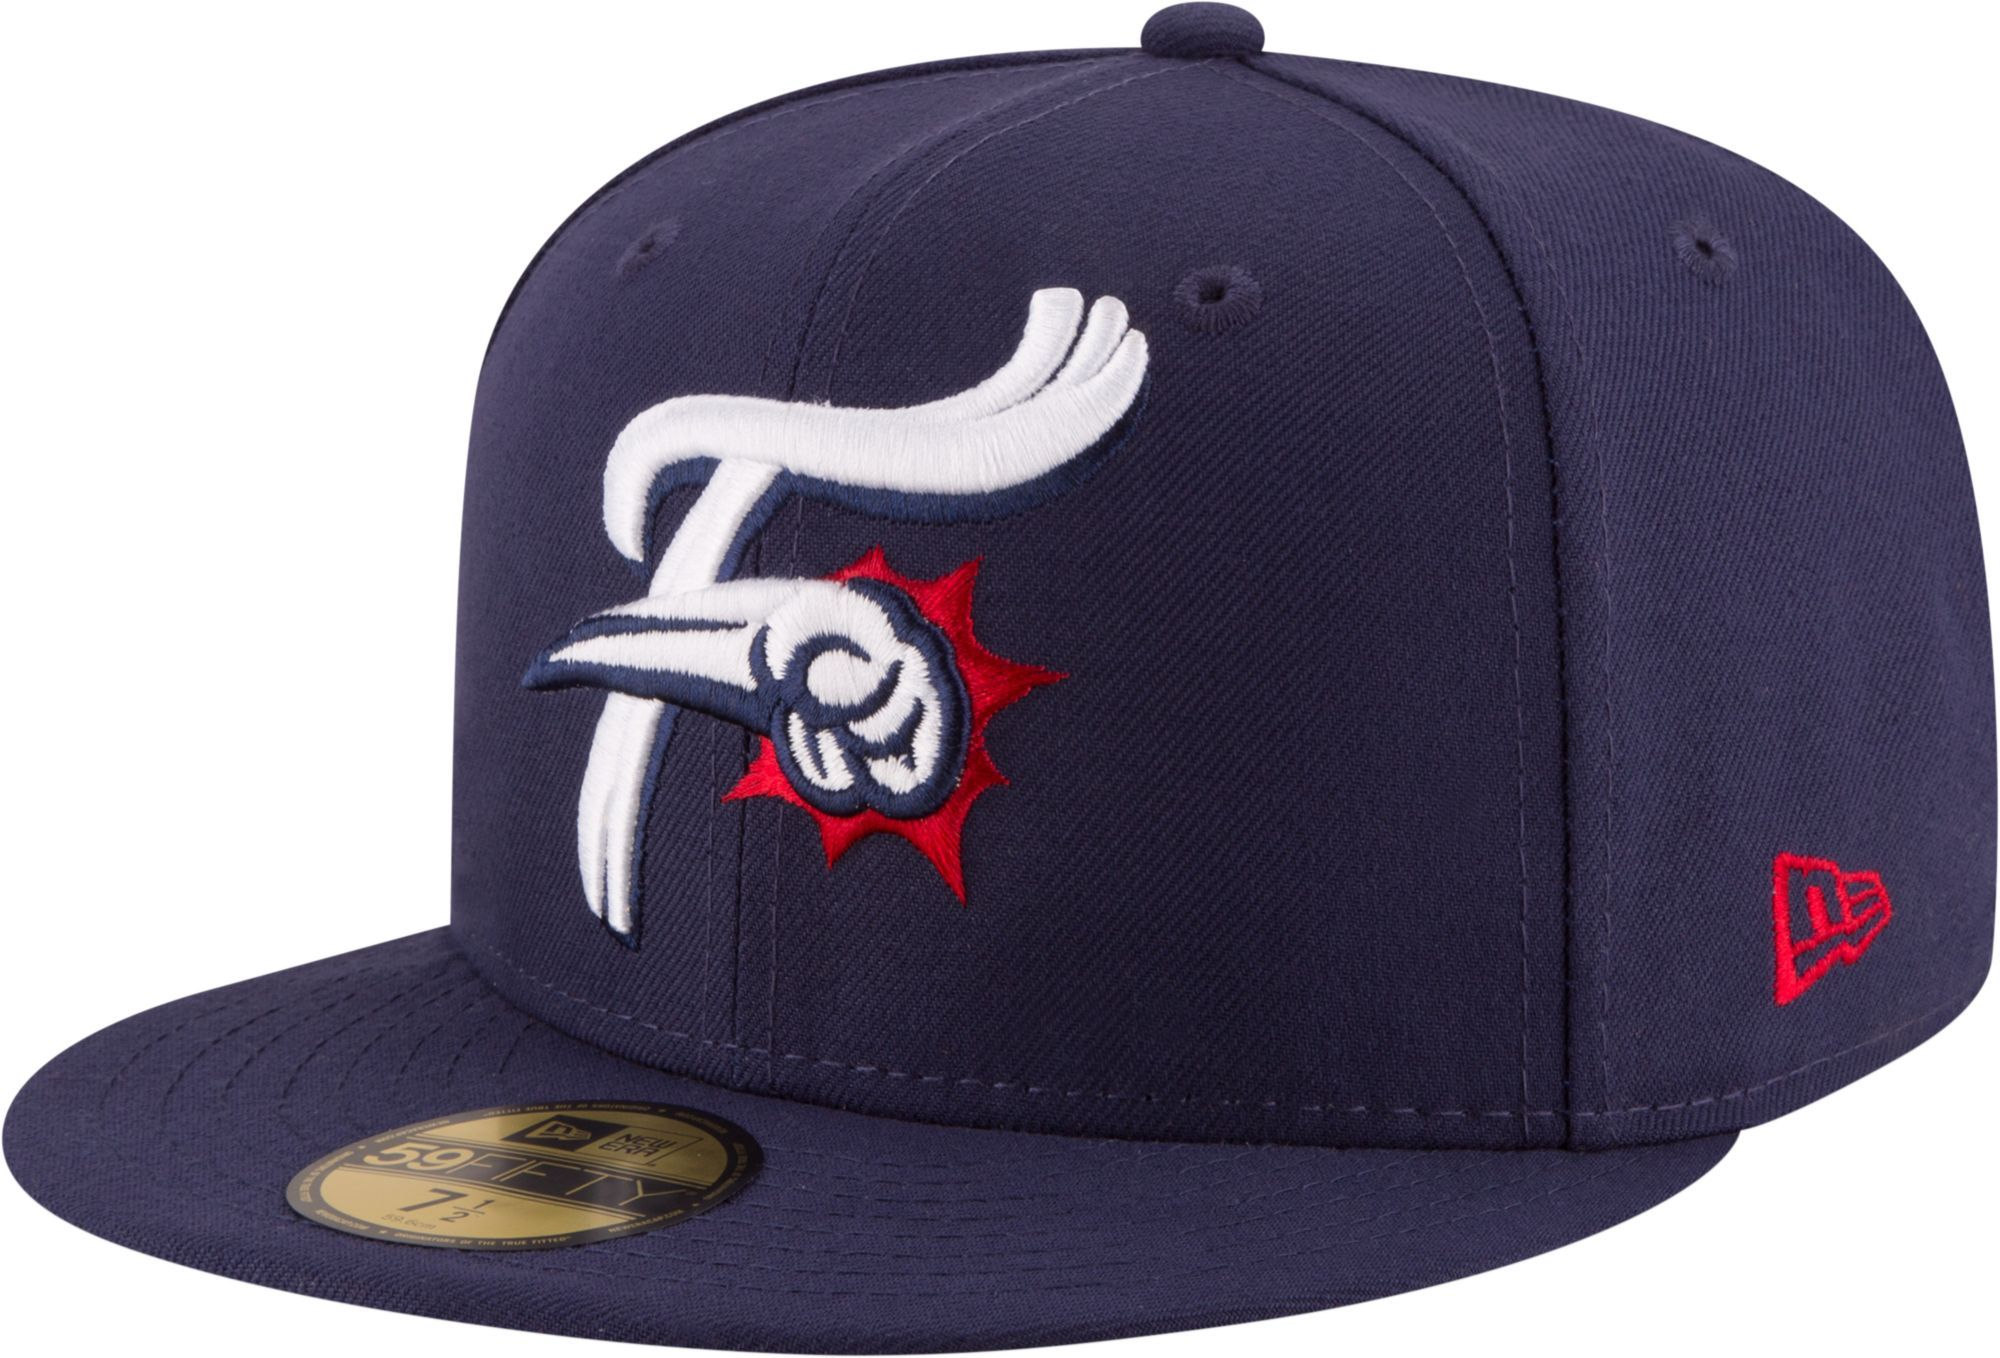 4d822bd0551 New Era Men s Reading Fightin Phils 59Fifty Navy Authentic Hat ...